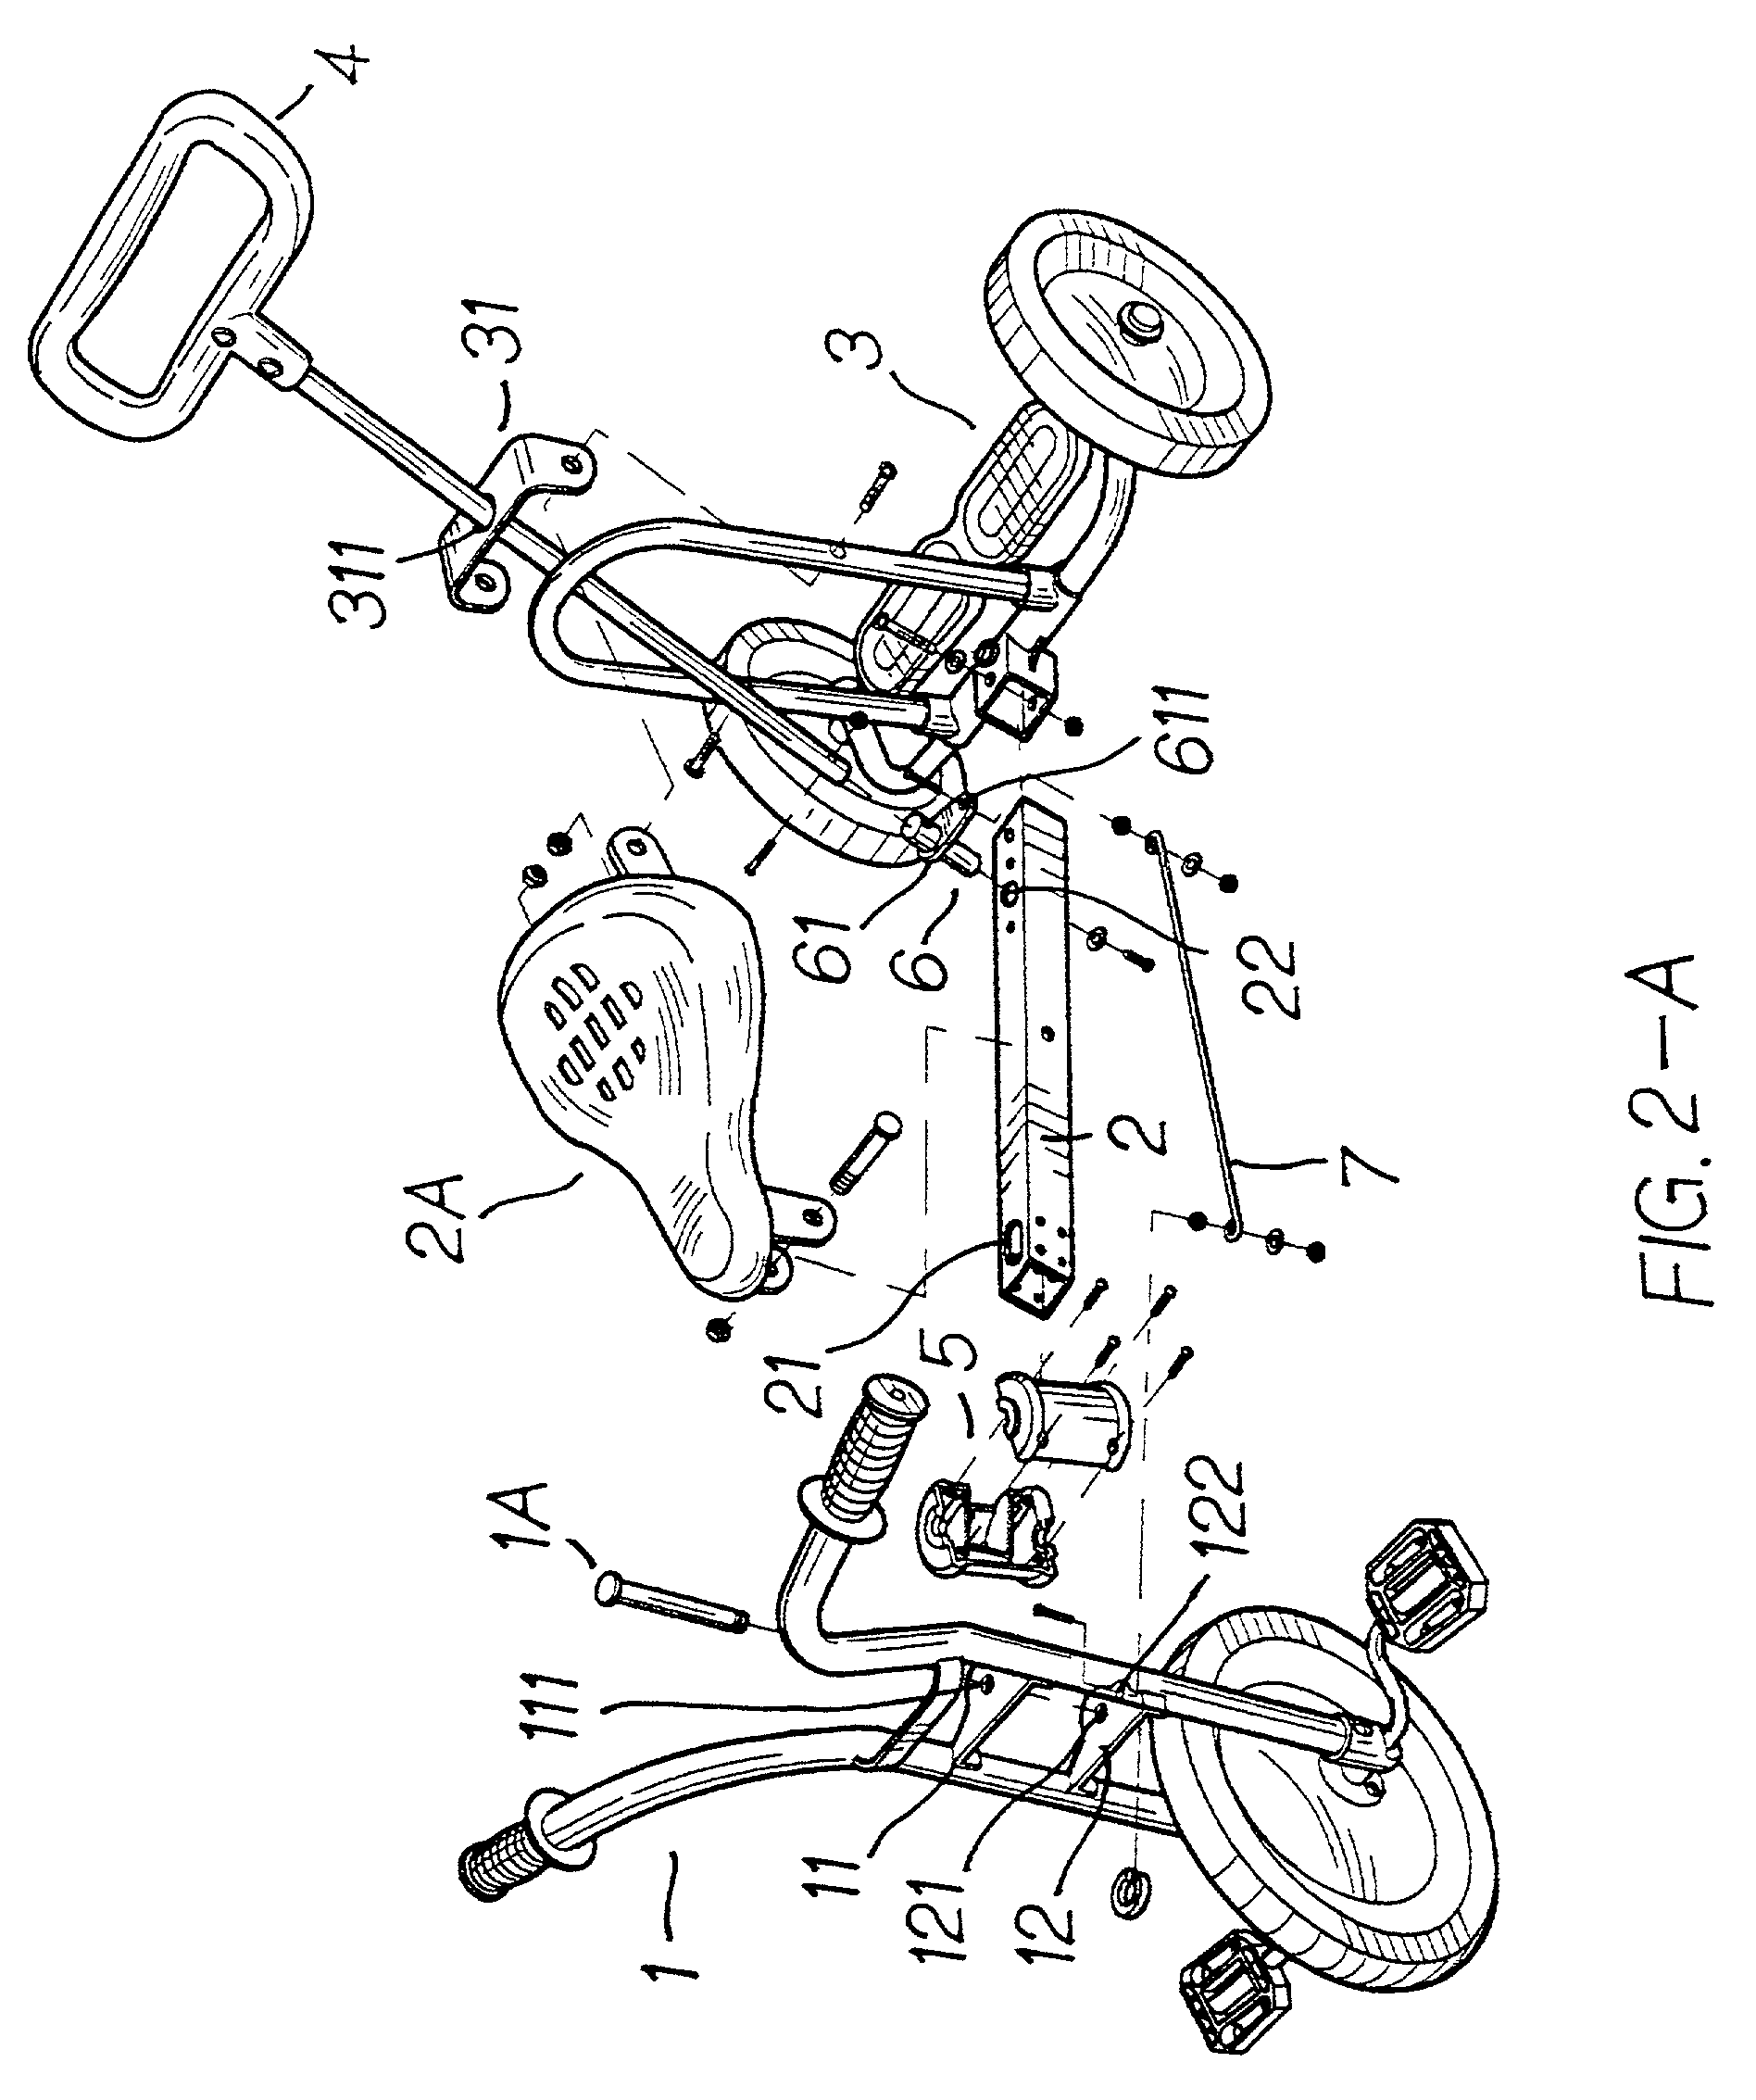 US20030132596A1 20030717 D00002 brevet us20030132596 steering structure of children's tricycle